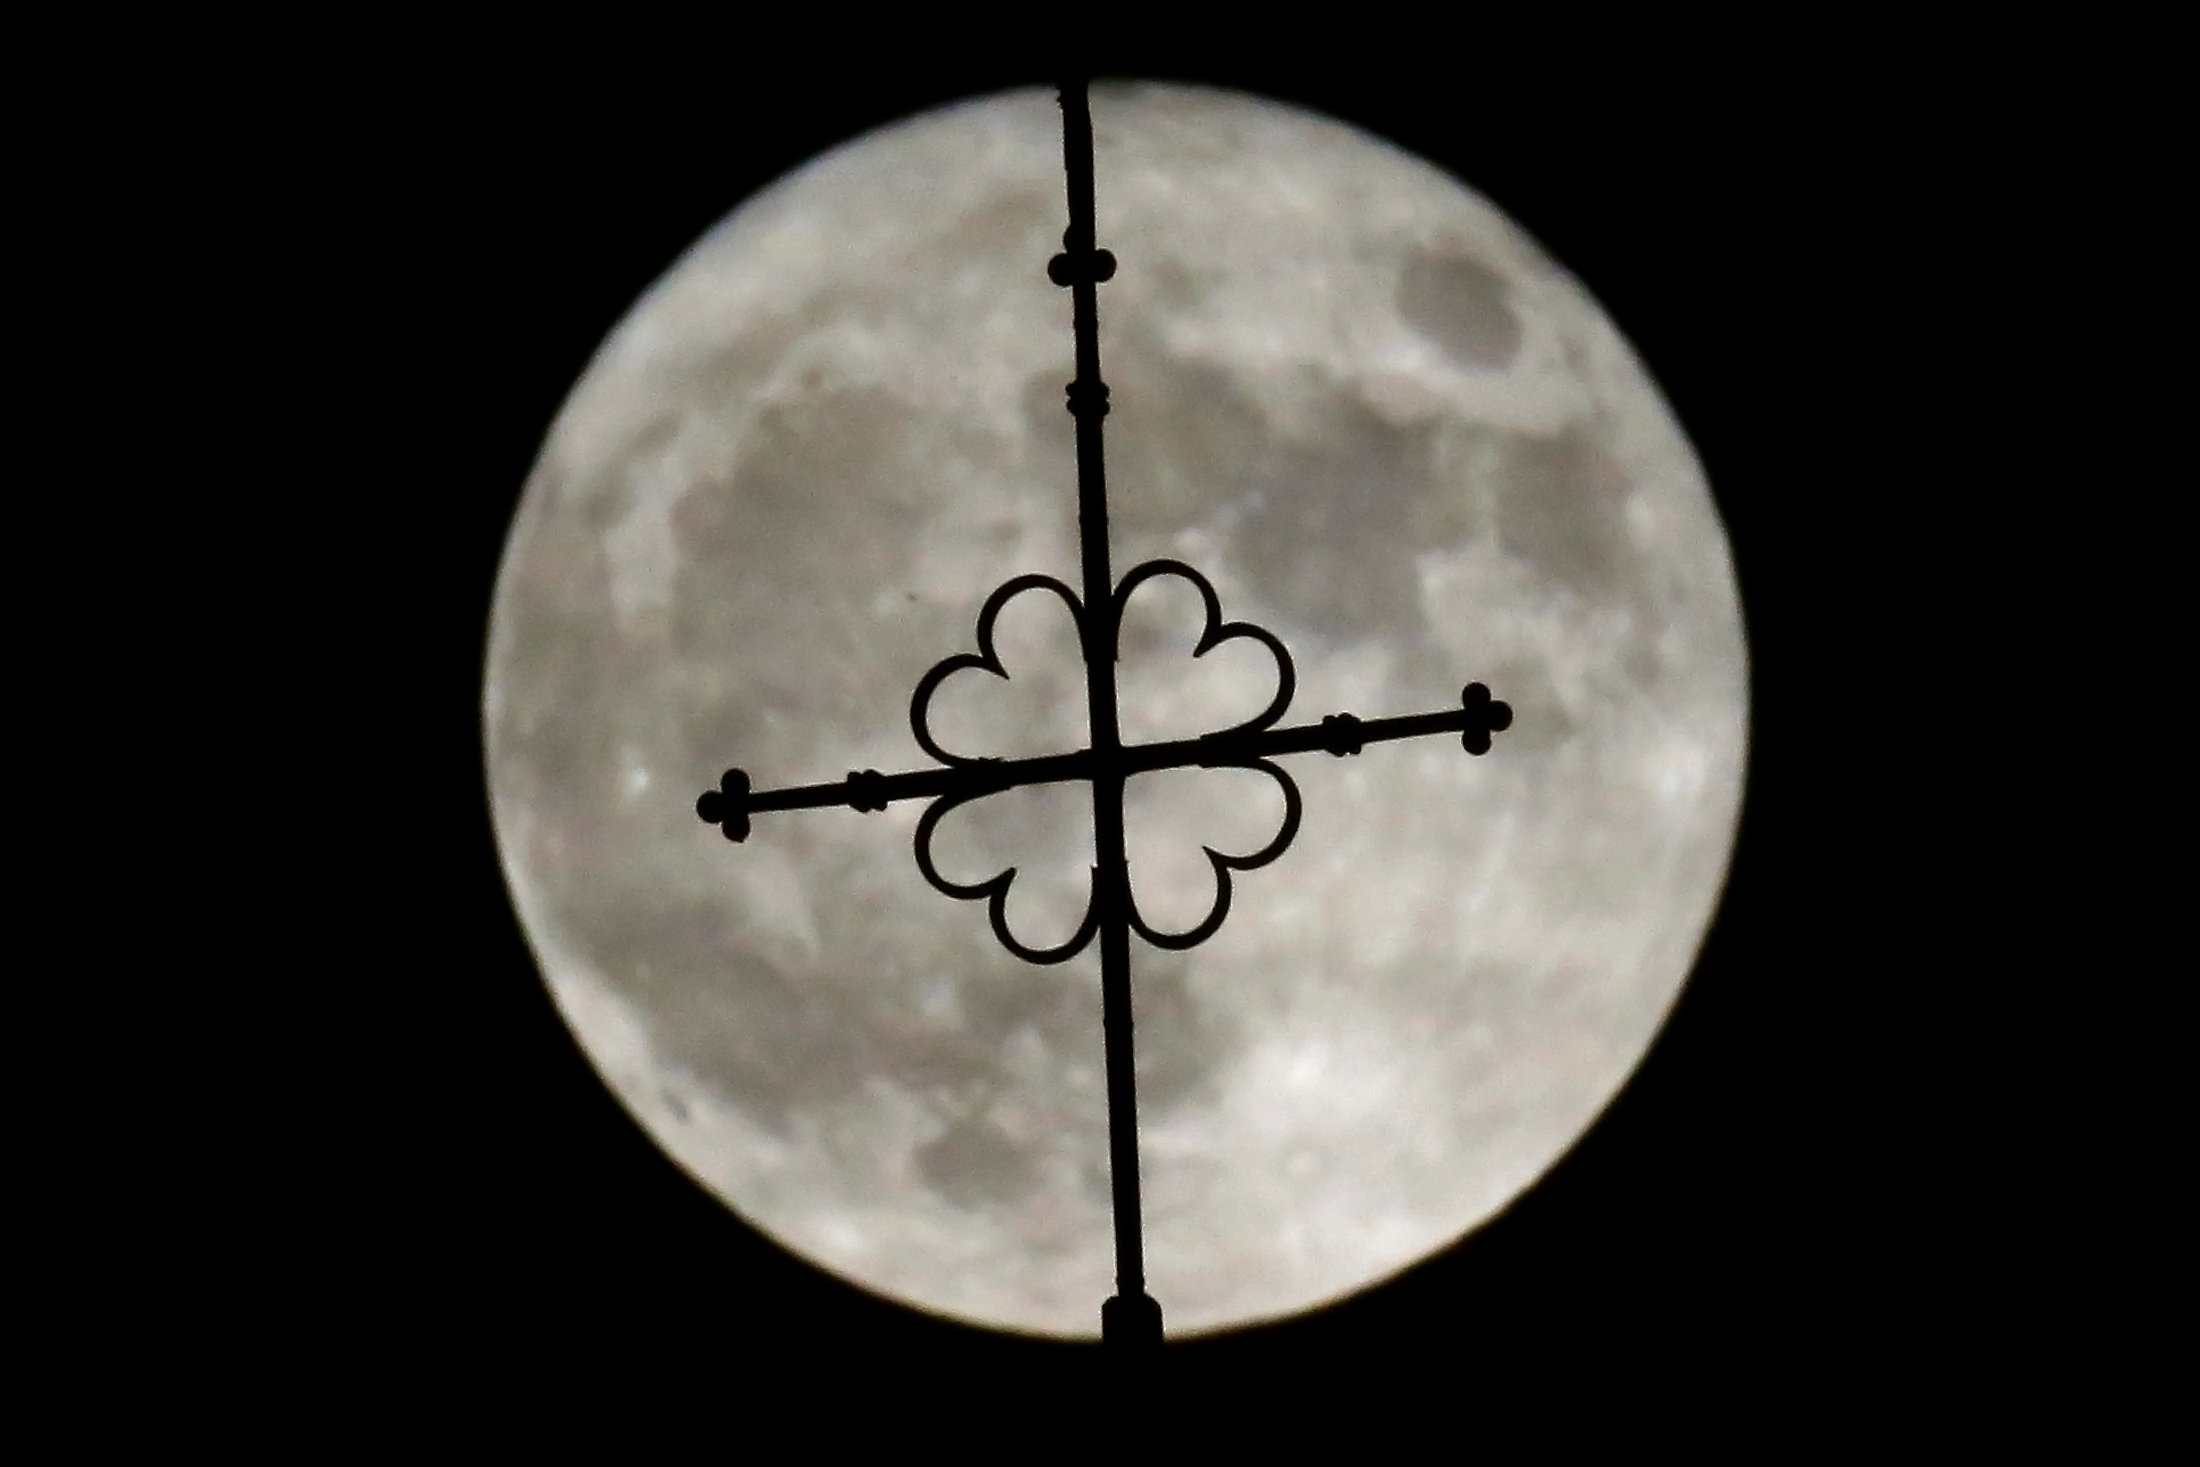 The rising supermoon is seen over the church of Saint-Hilaire in the village of Saint-Fiacre-sur-Maine near Nantes, western France November 14,